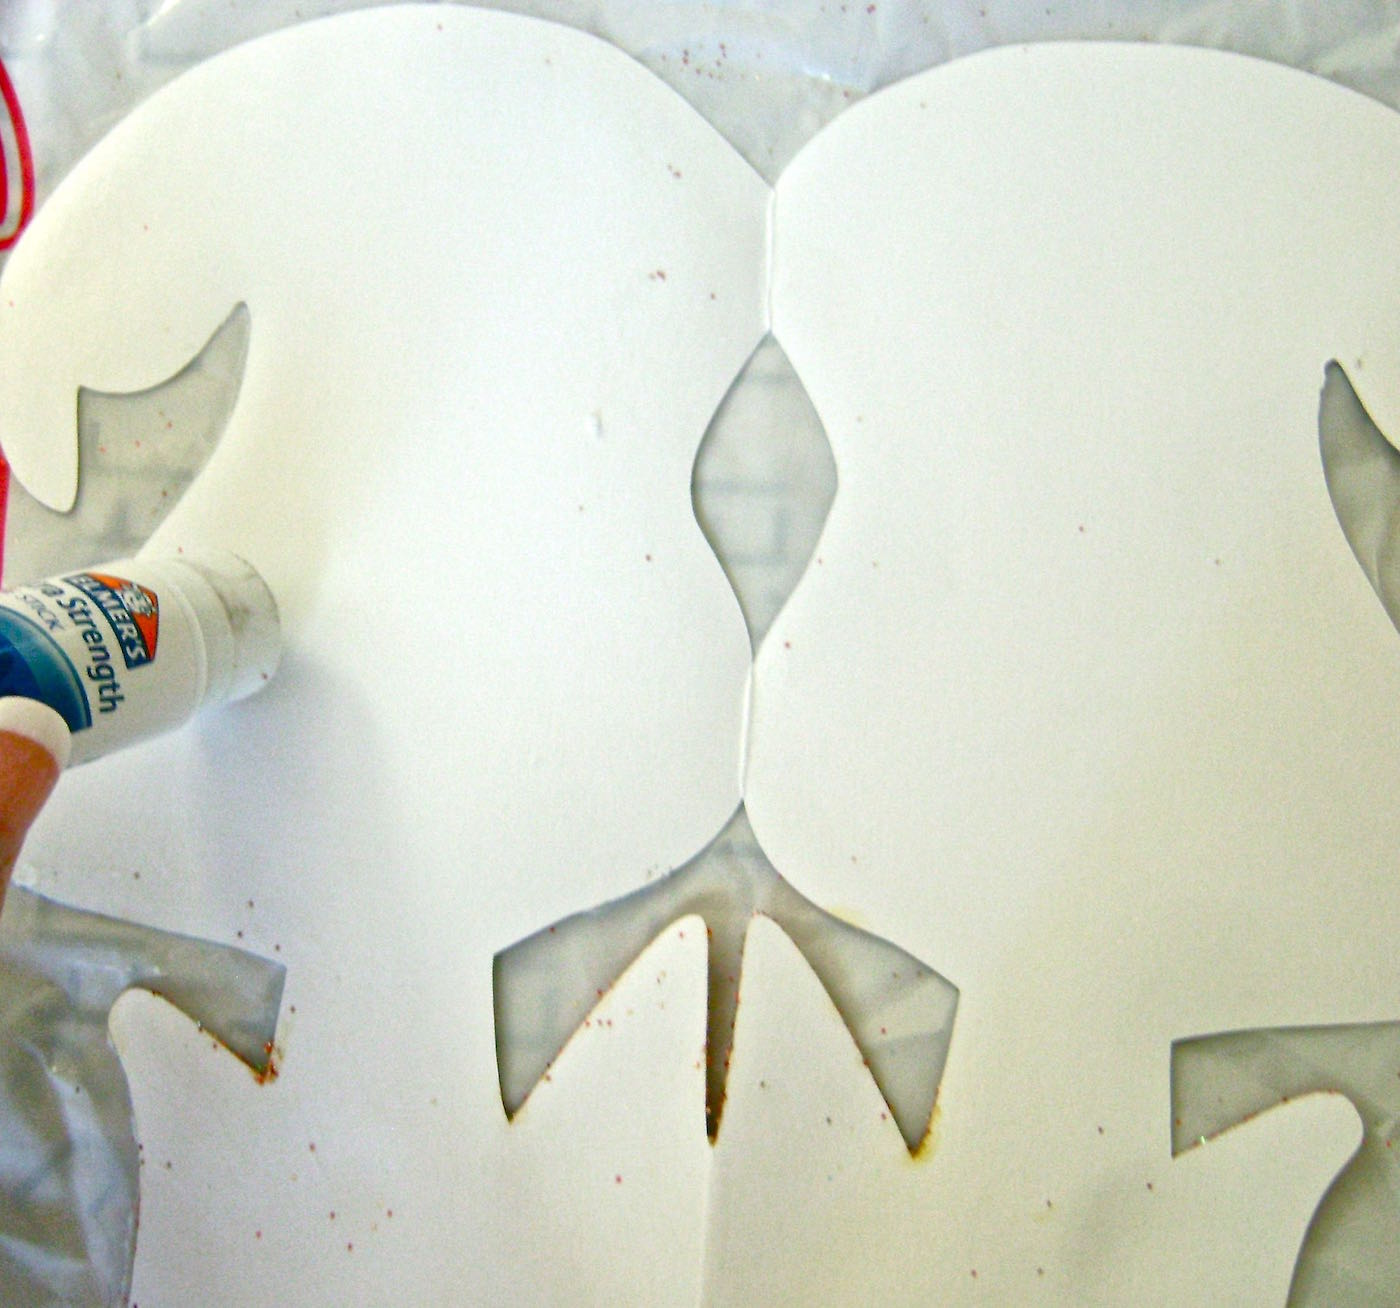 step 7 - Using a glue stick, run around the outer edge of one ghost on the blank side. Also apply glue along the fold.